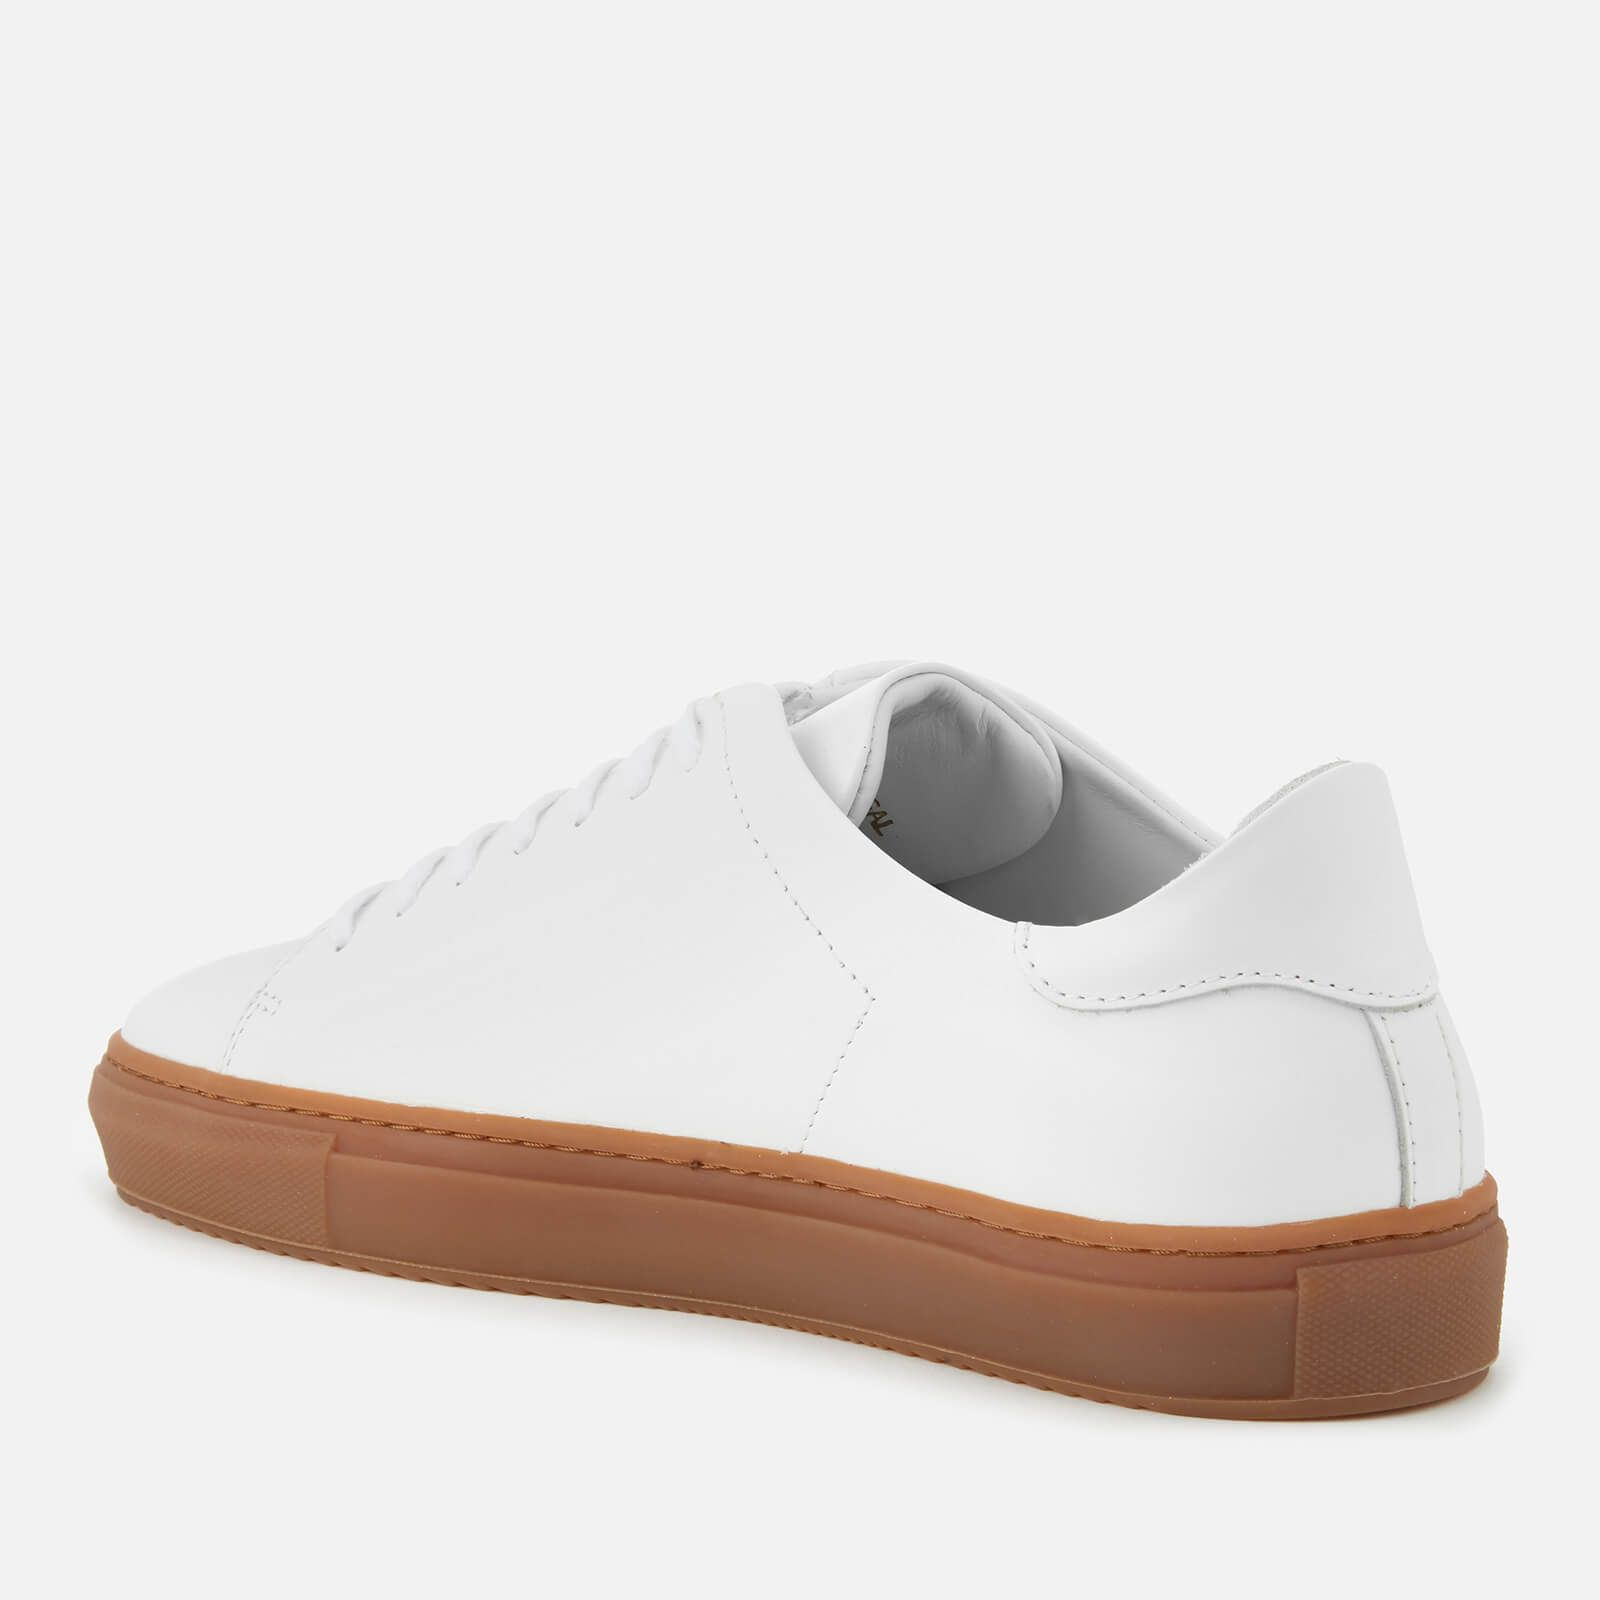 Axel arigato men, Leather trainers, Leather